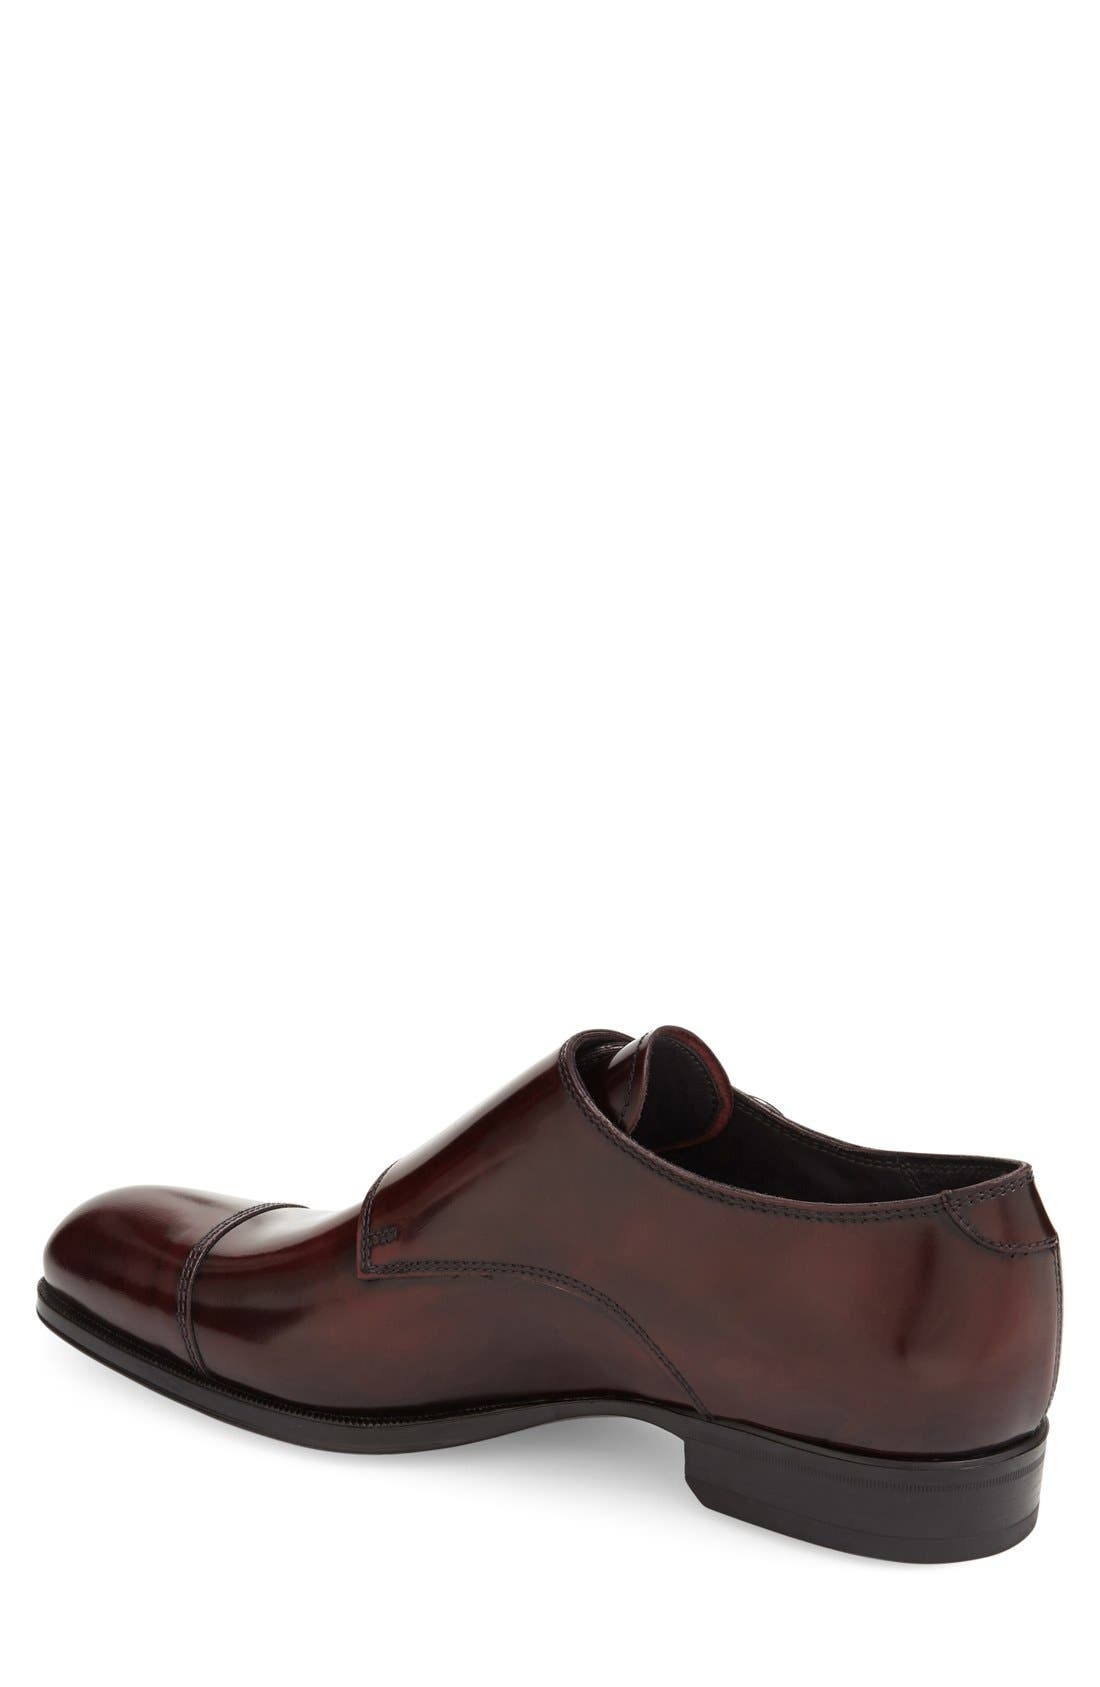 Alternate Image 2  - To Boot New York 'Bailey' Double Monk Strap Shoe (Men)